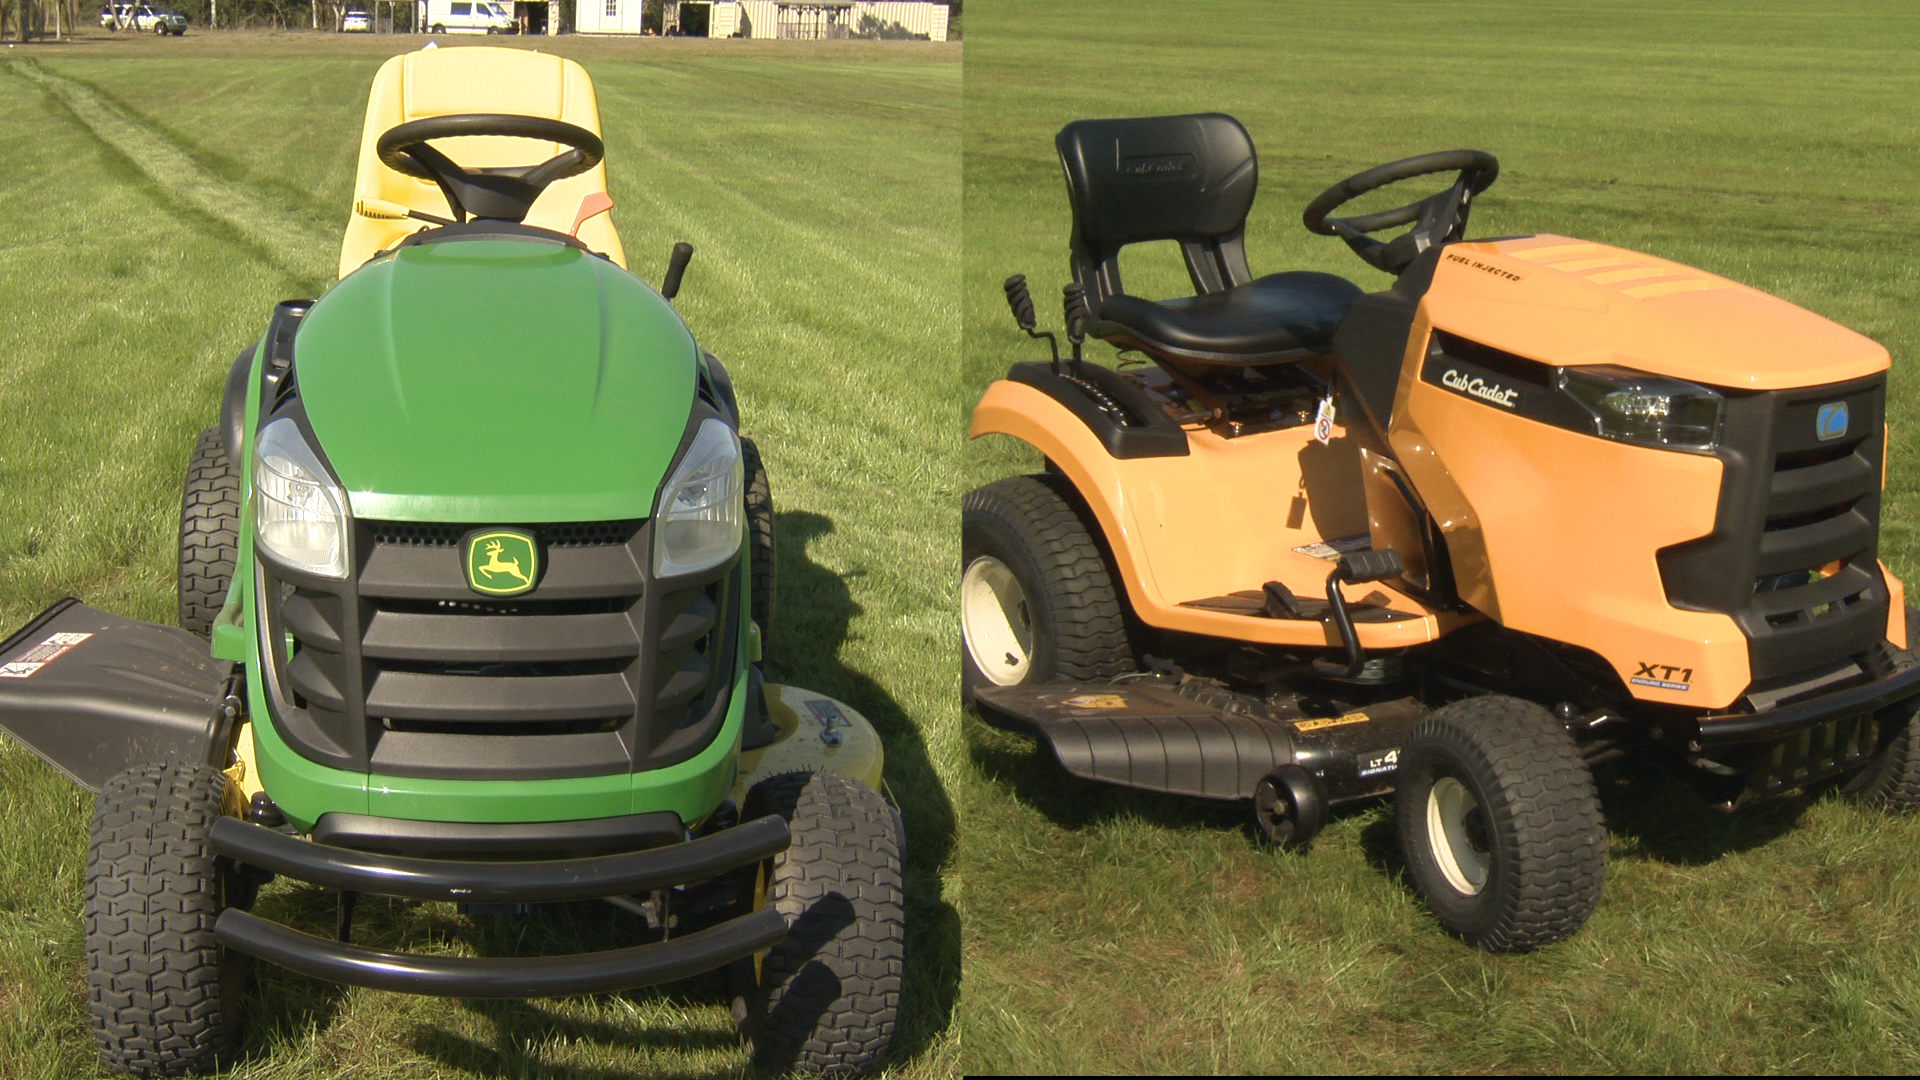 Nifty 1078702682 5380842717001 1703cro Tractor Face Off Still 2017 03 31 15 52 Commercial Zero Turn Mowers Lowes Husqvarna Zero Turn Mowers Lowes houzz-03 Zero Turn Mowers Lowes